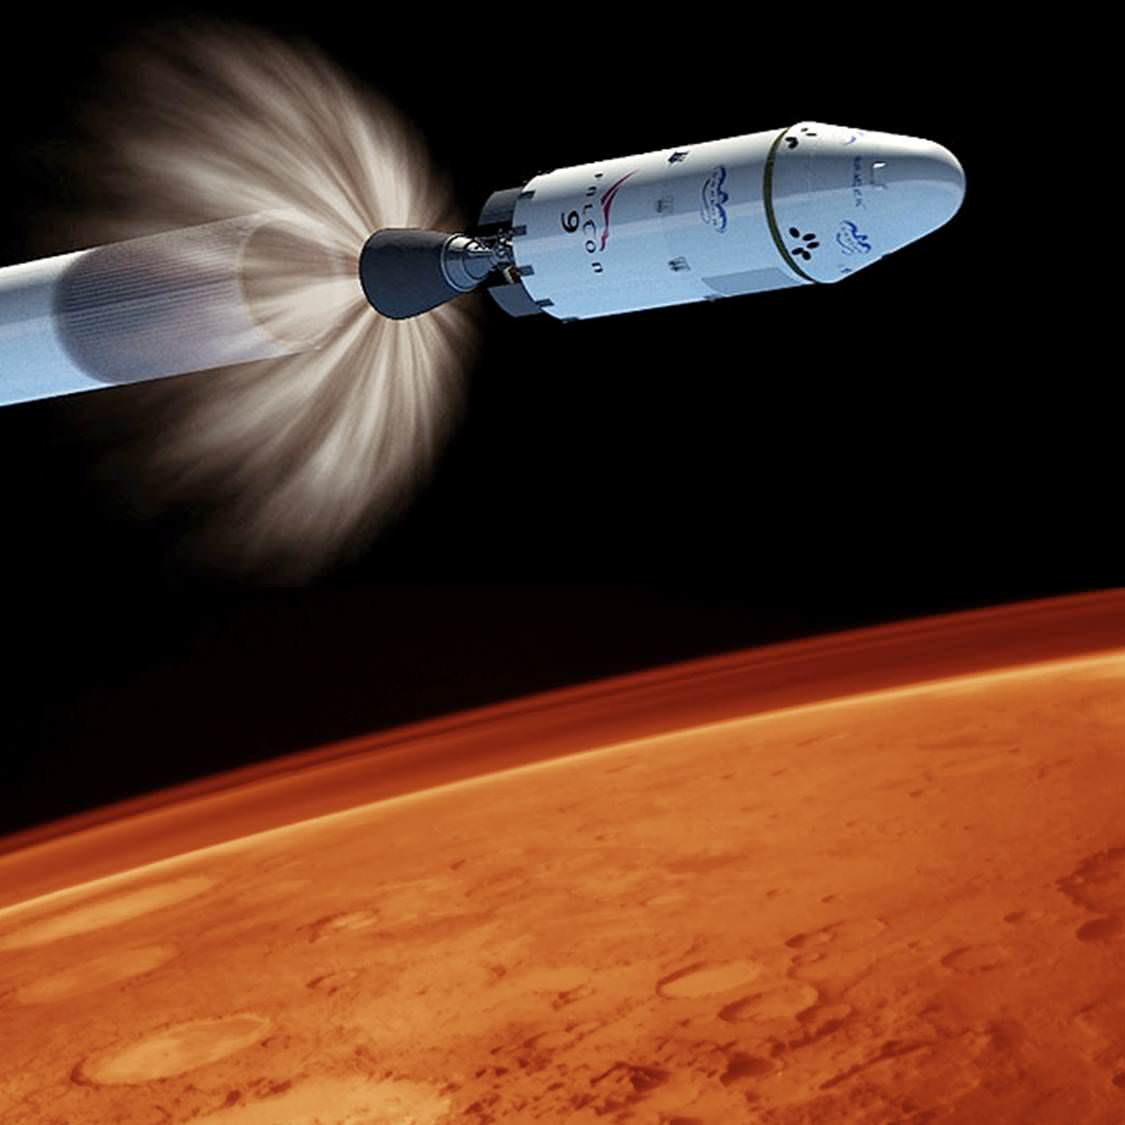 Could an image similar to this be in our near future? If Elon Musk has his way - the answer is yes. Falcon 9 Image Courtesy of SpaceX - Mars Image Courtesy of NASA